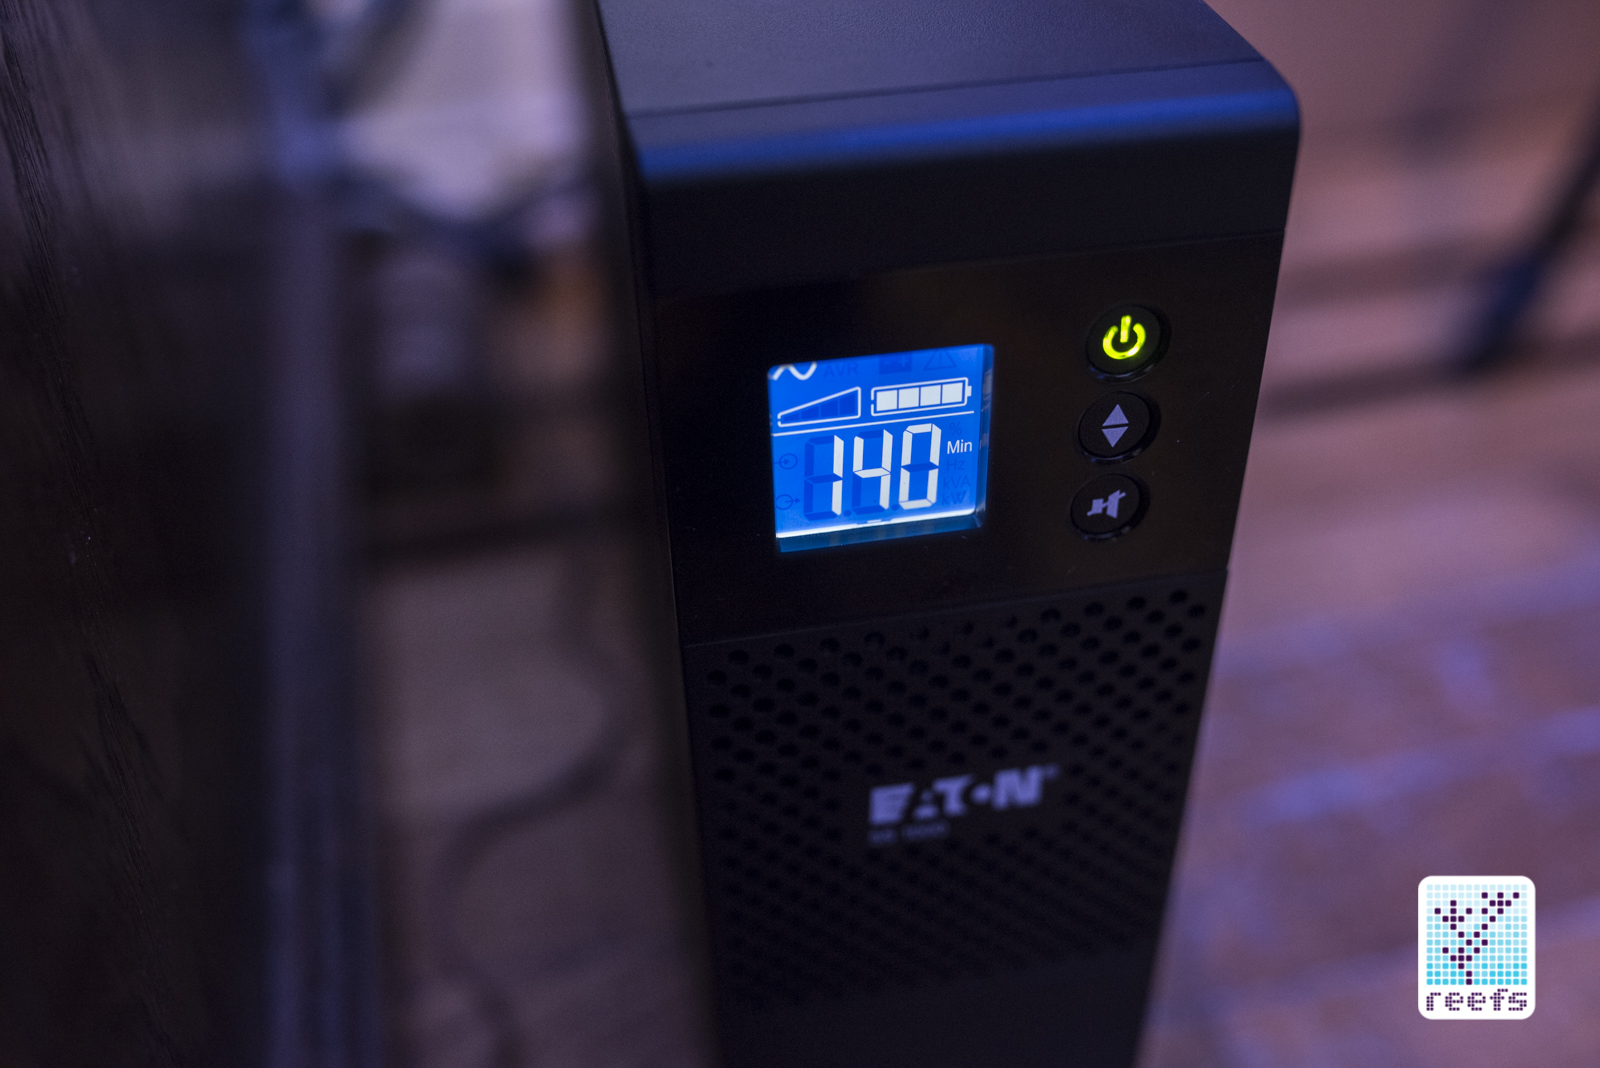 Product Review: EatON 5S1000LCD UPS Device - Reefs com